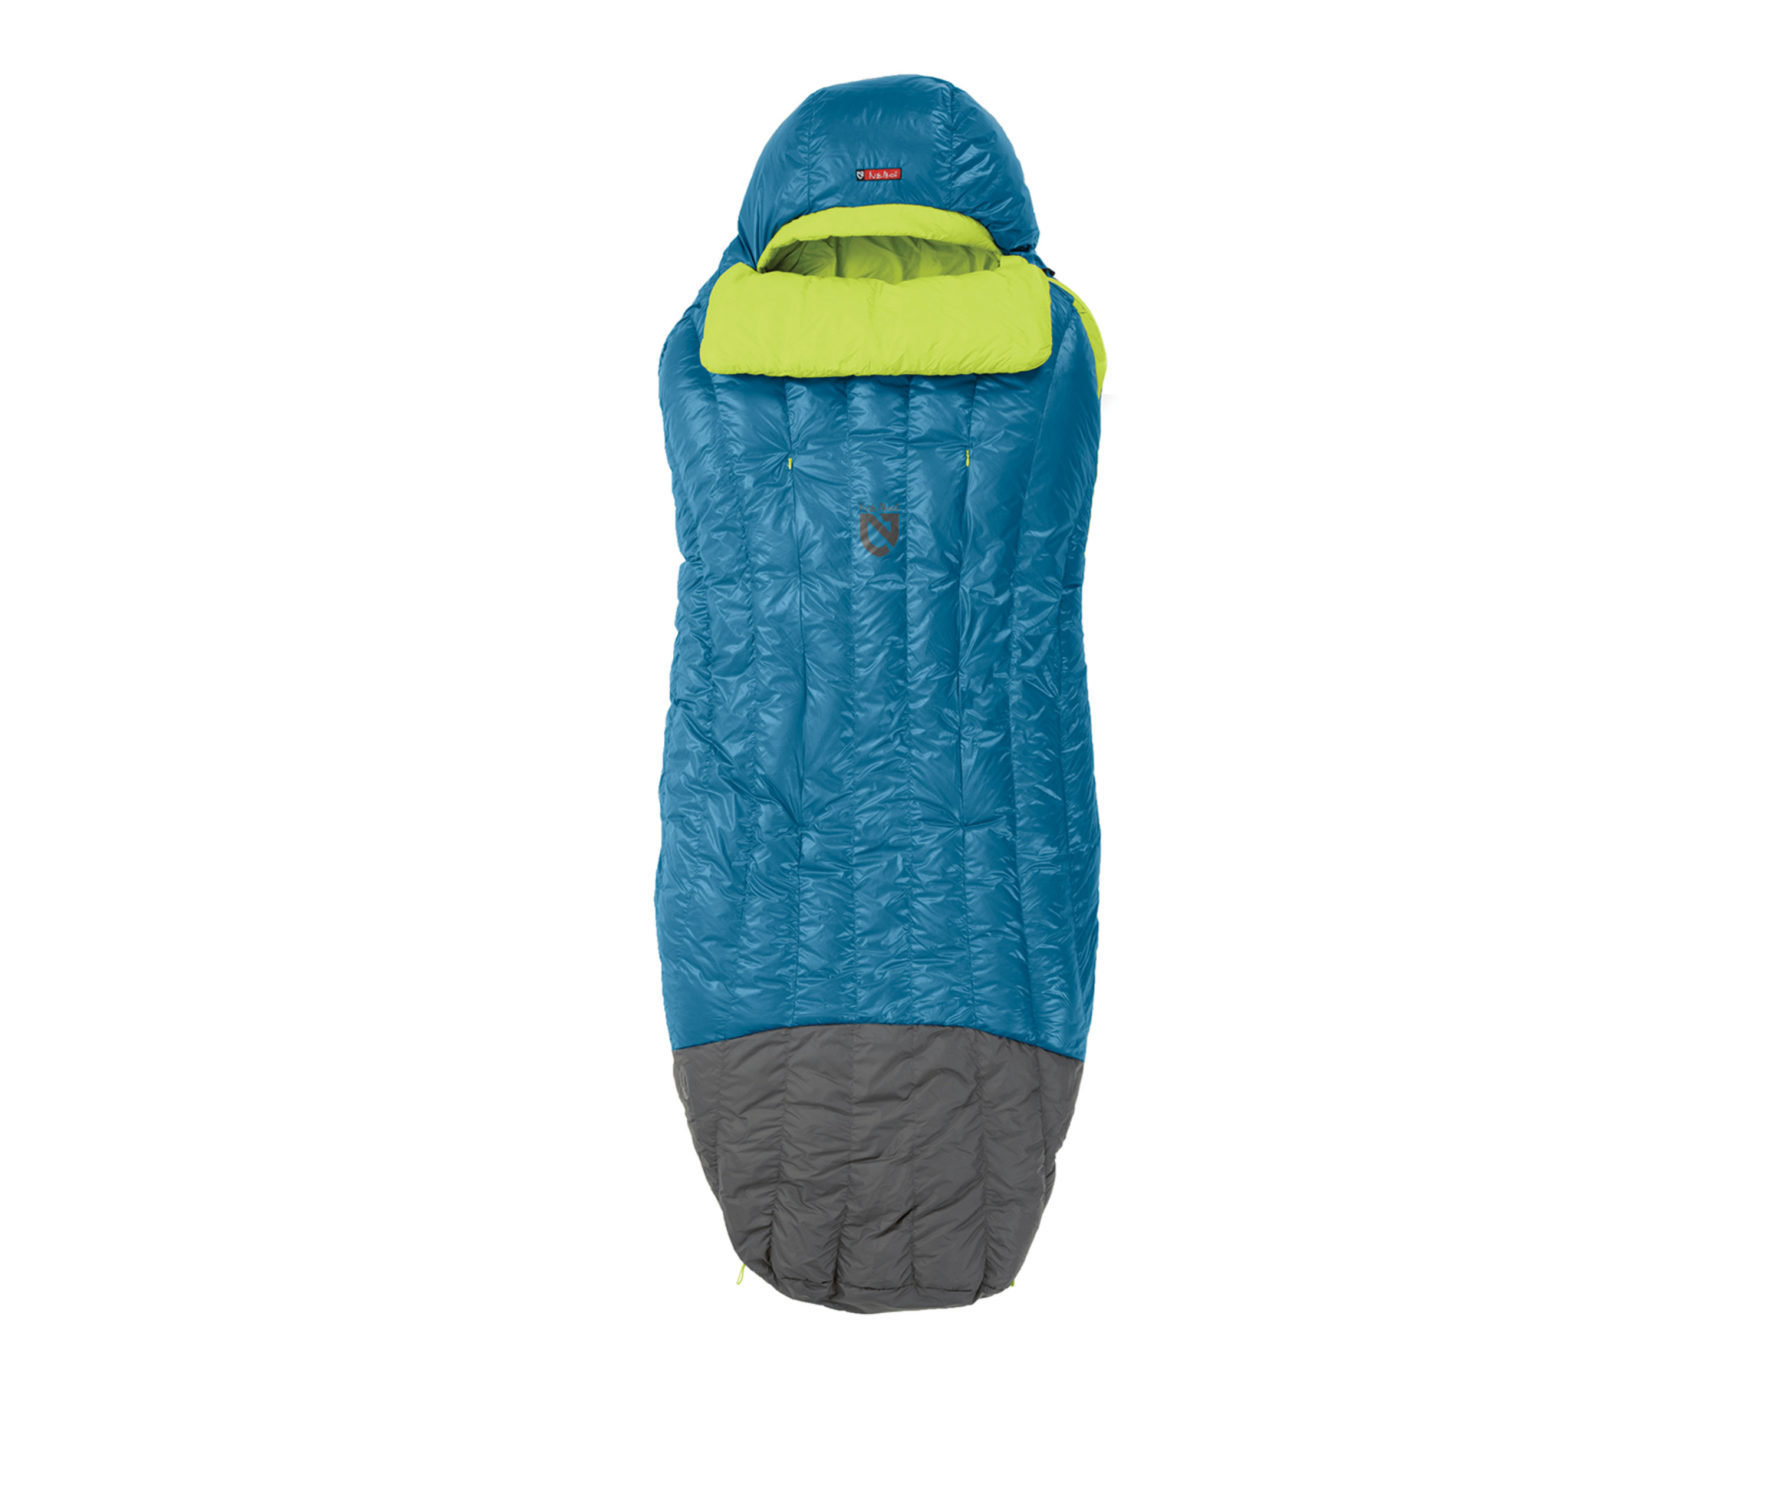 NEMO Disco Men's Down Sleeping Bag JRI1NDISCO